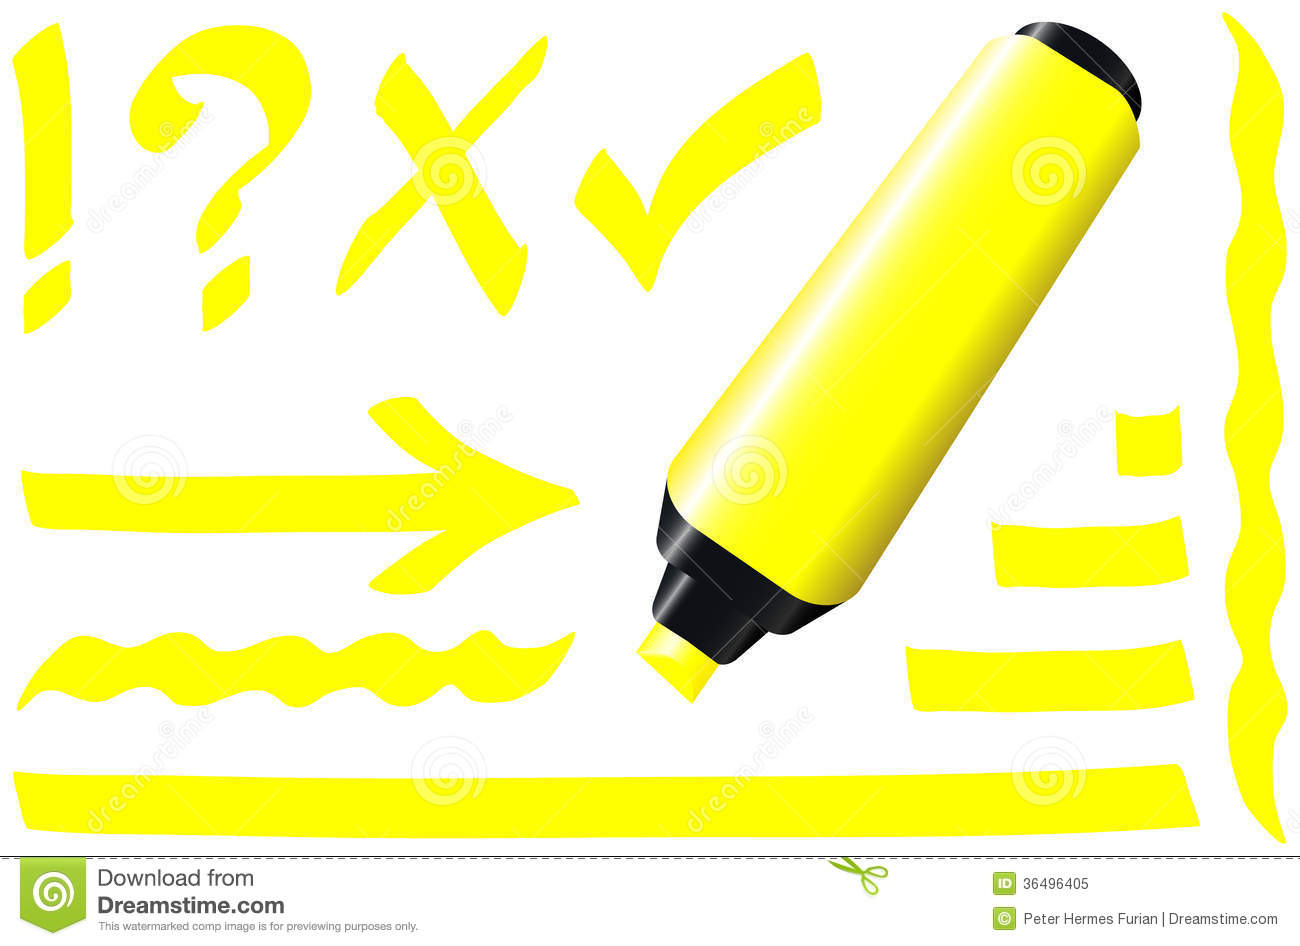 How To Make Fluorescent Yellow Paint